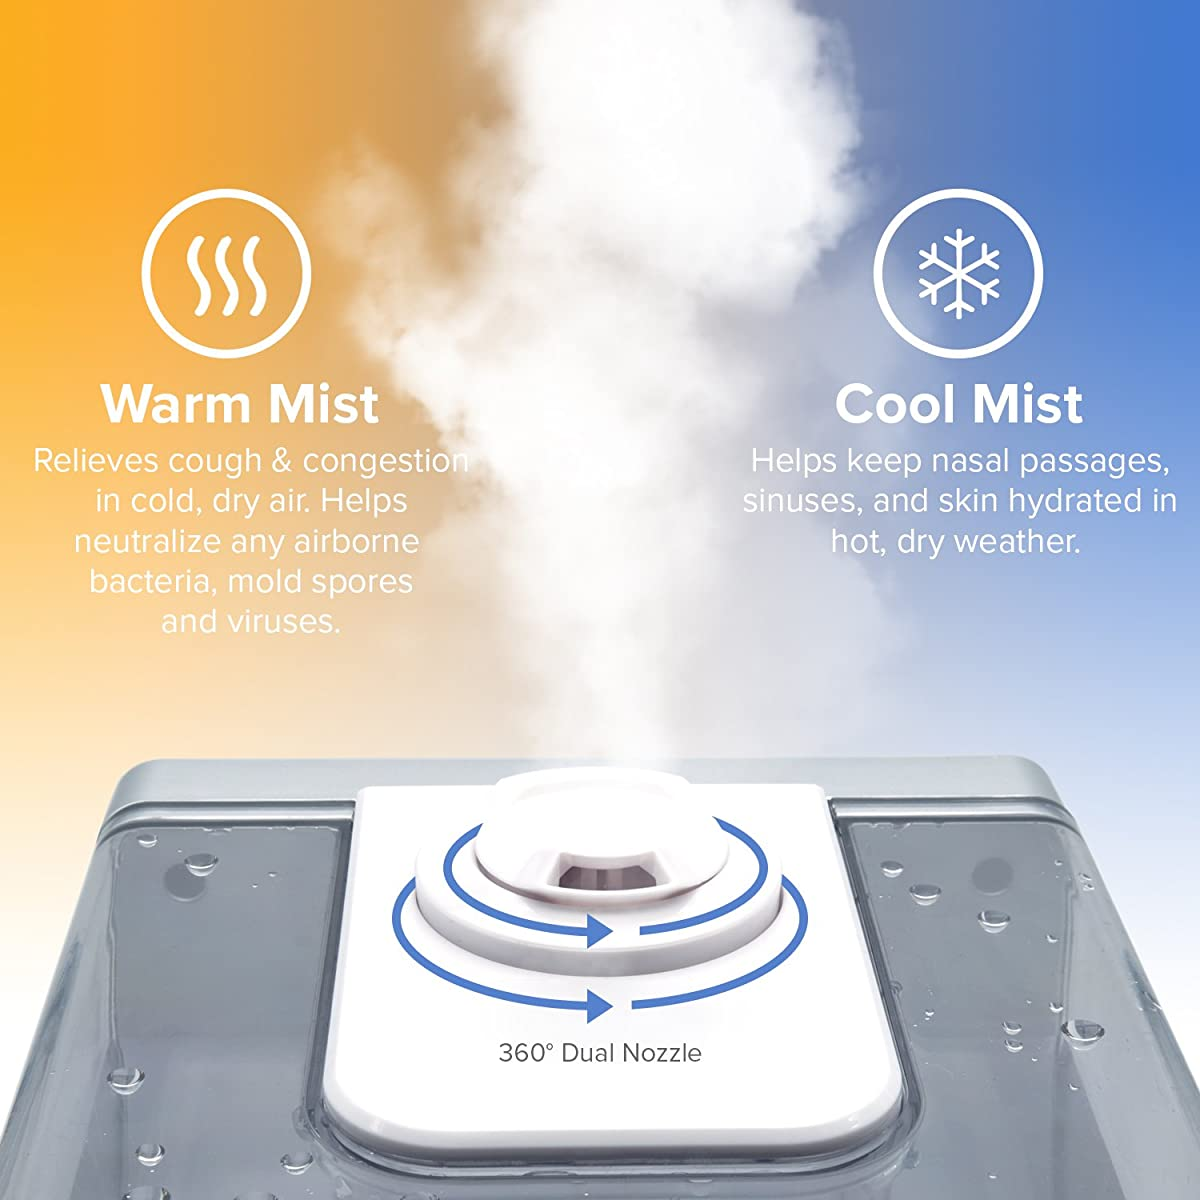 Levoit Cool Amp Warm Mist Humidifier Ultrasonic Air Vaporizer Automatic Remote Control 6l 16